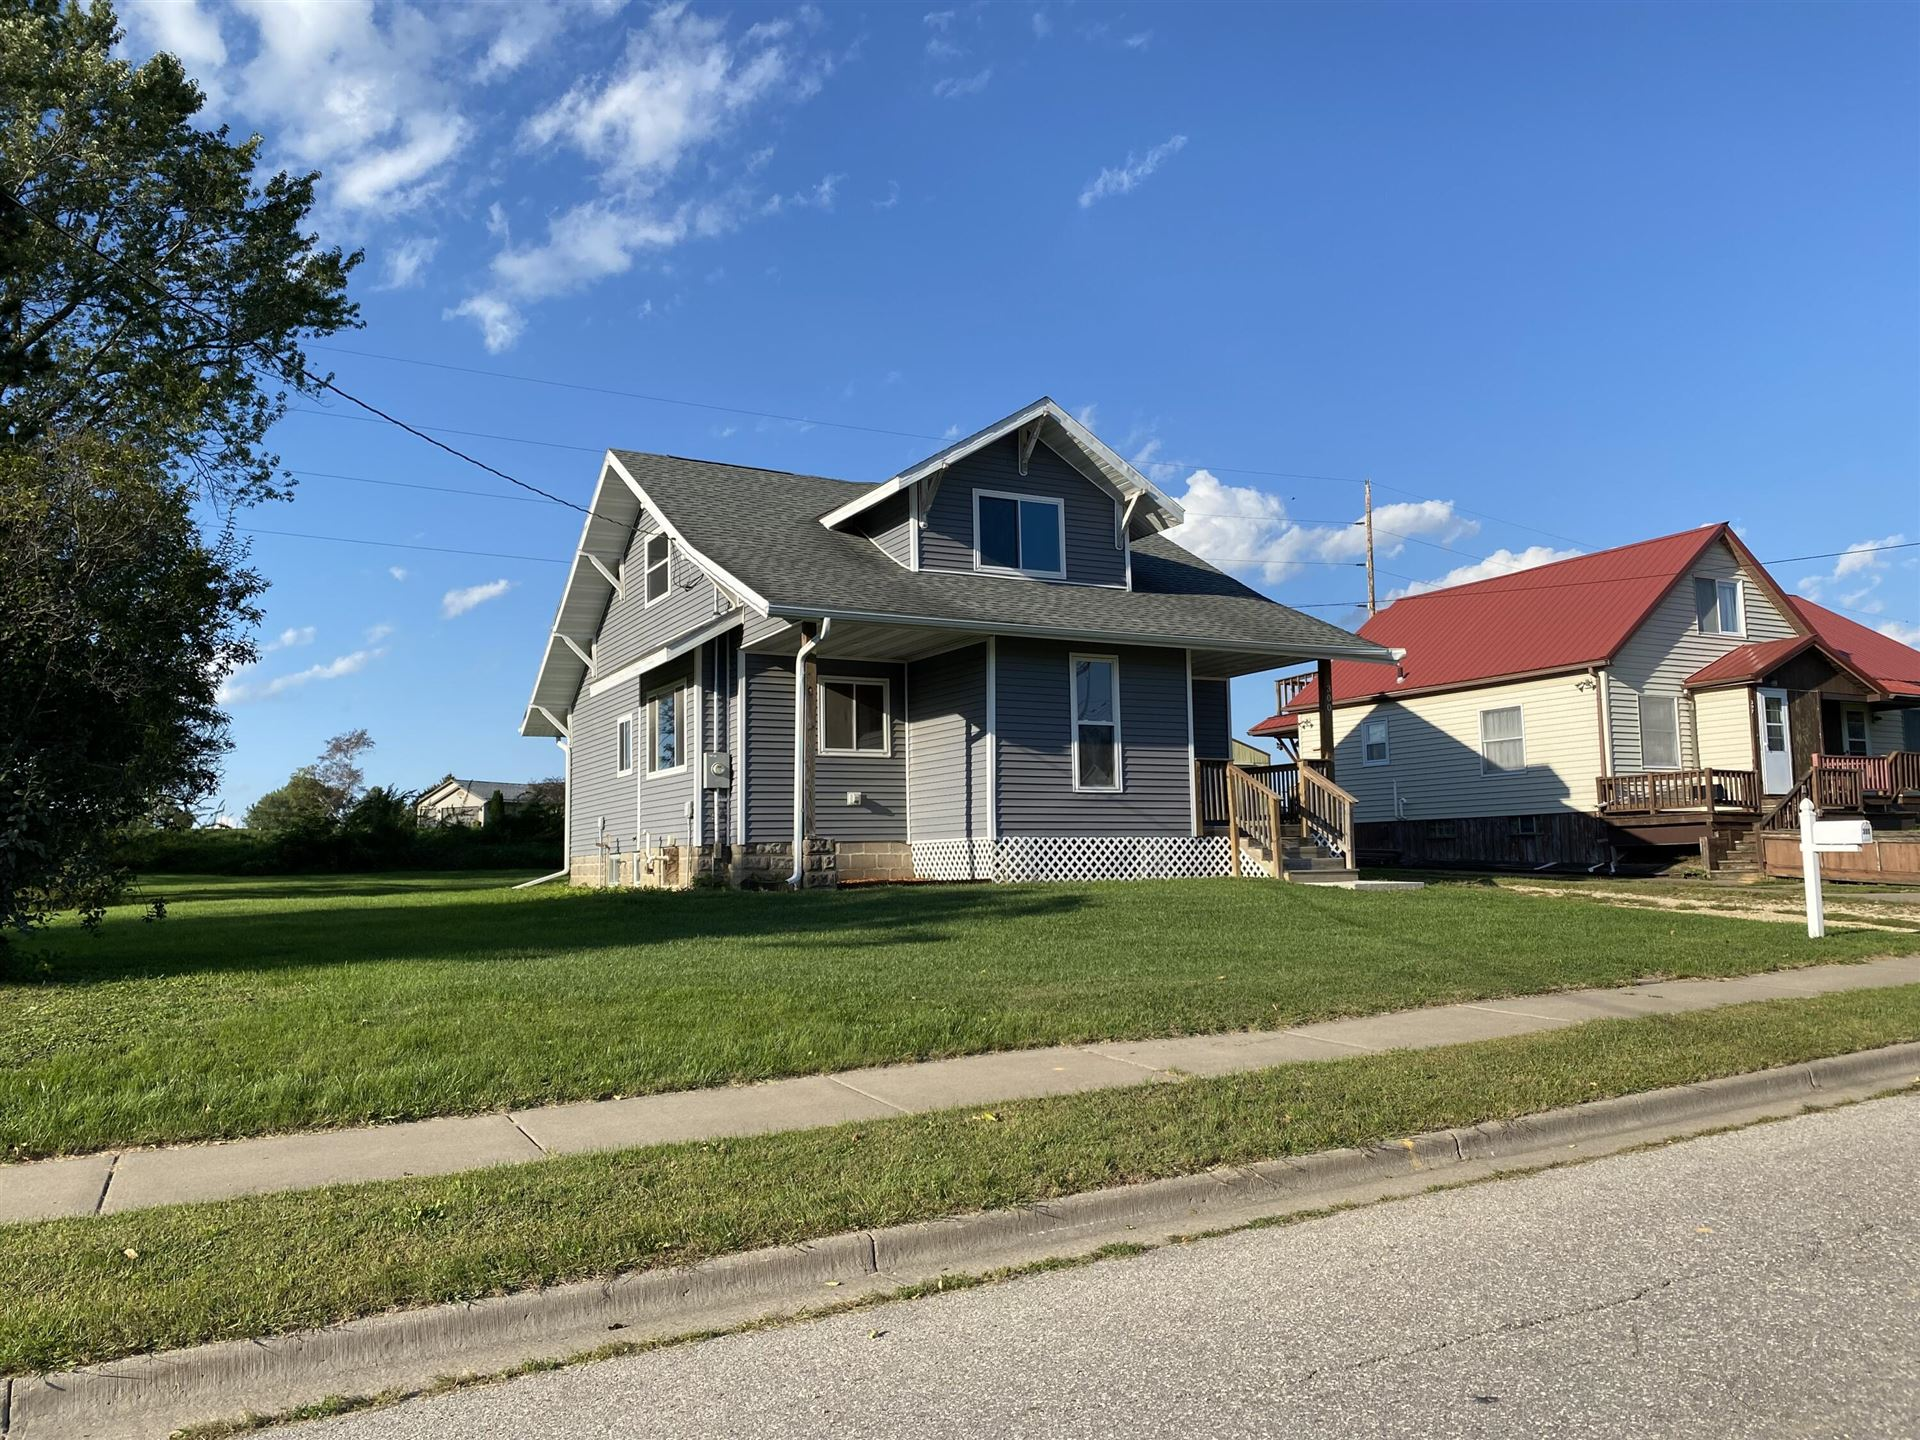 300 E Park St, Westby, WI 54667 - MLS#: 1761806